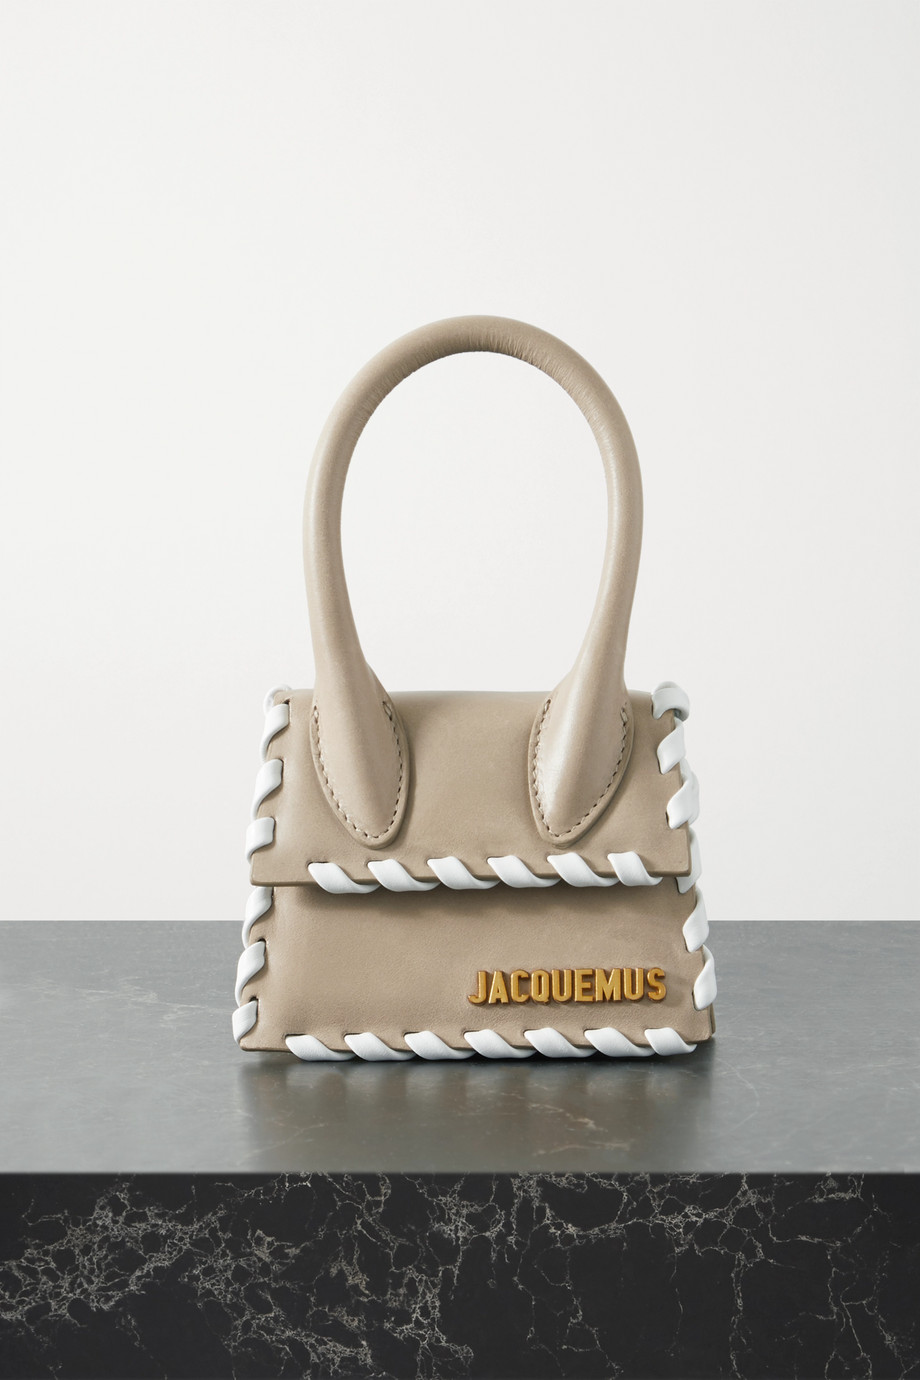 Jacquemus Le Chiquito whipstitched leather tote